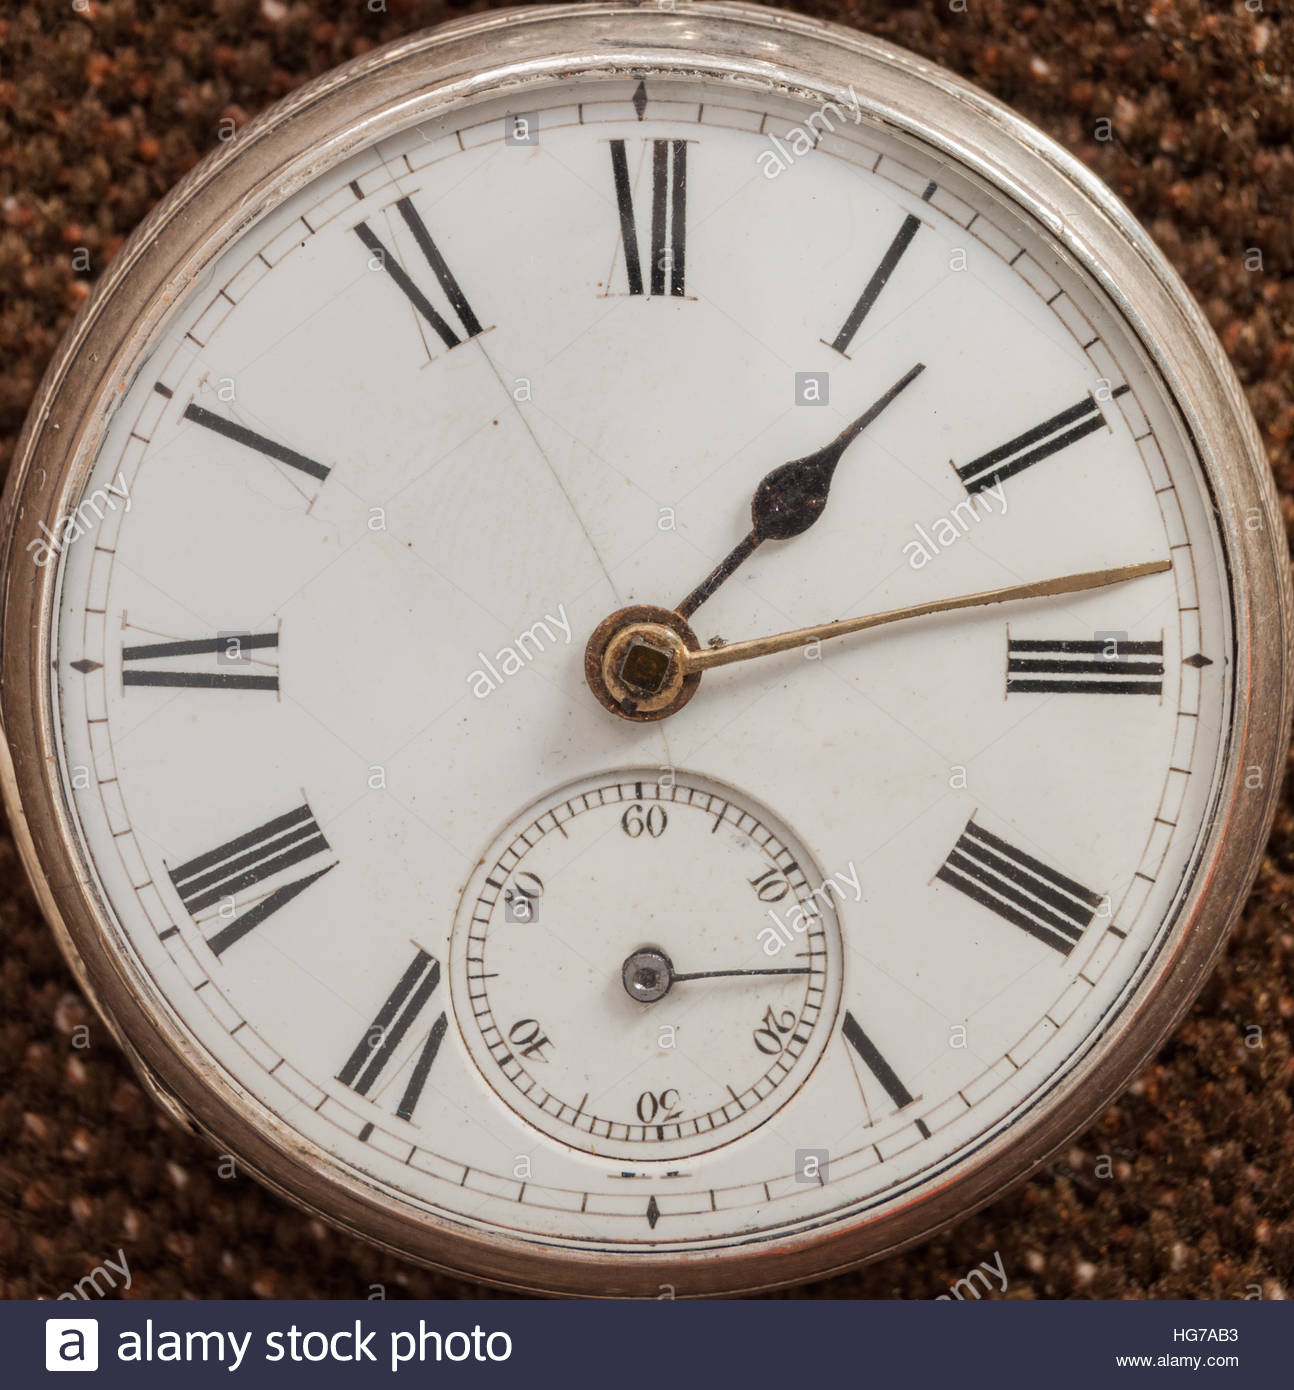 Antique sterling silver pocket watch - Stock Image